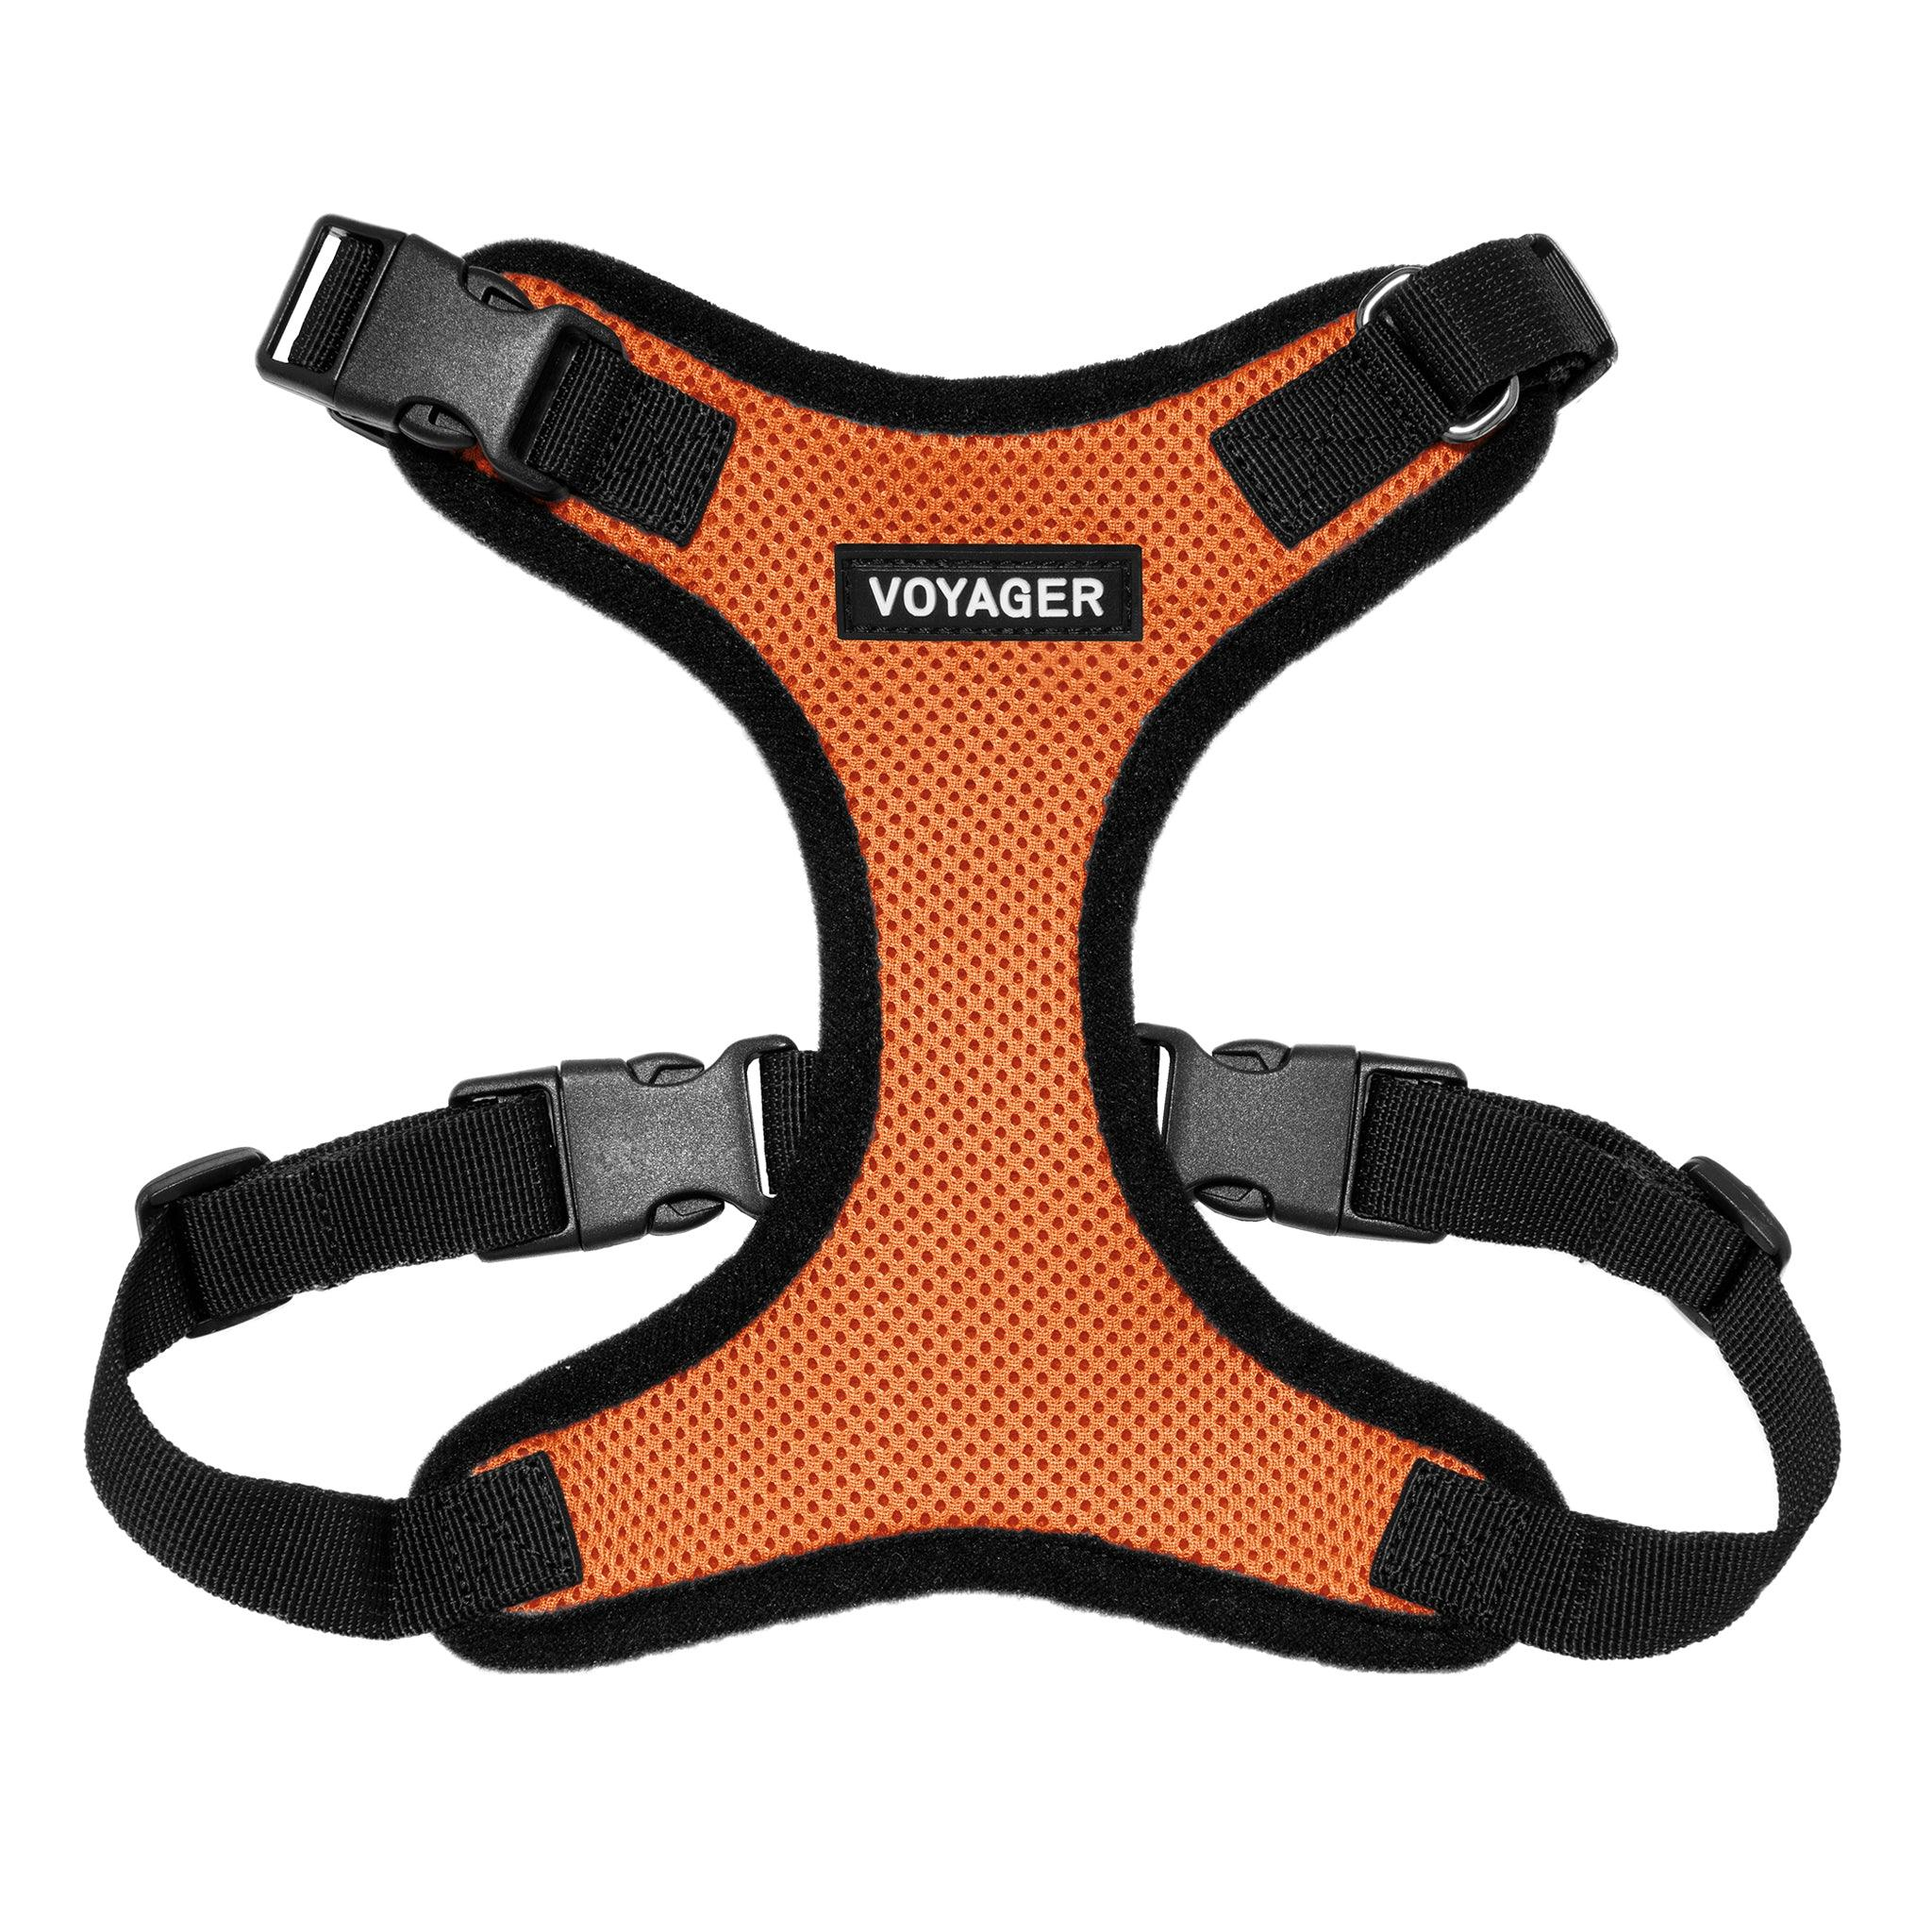 VOYAGER Step-In Lock Dog Harness in Orange with Black Trim and Webbing - Front